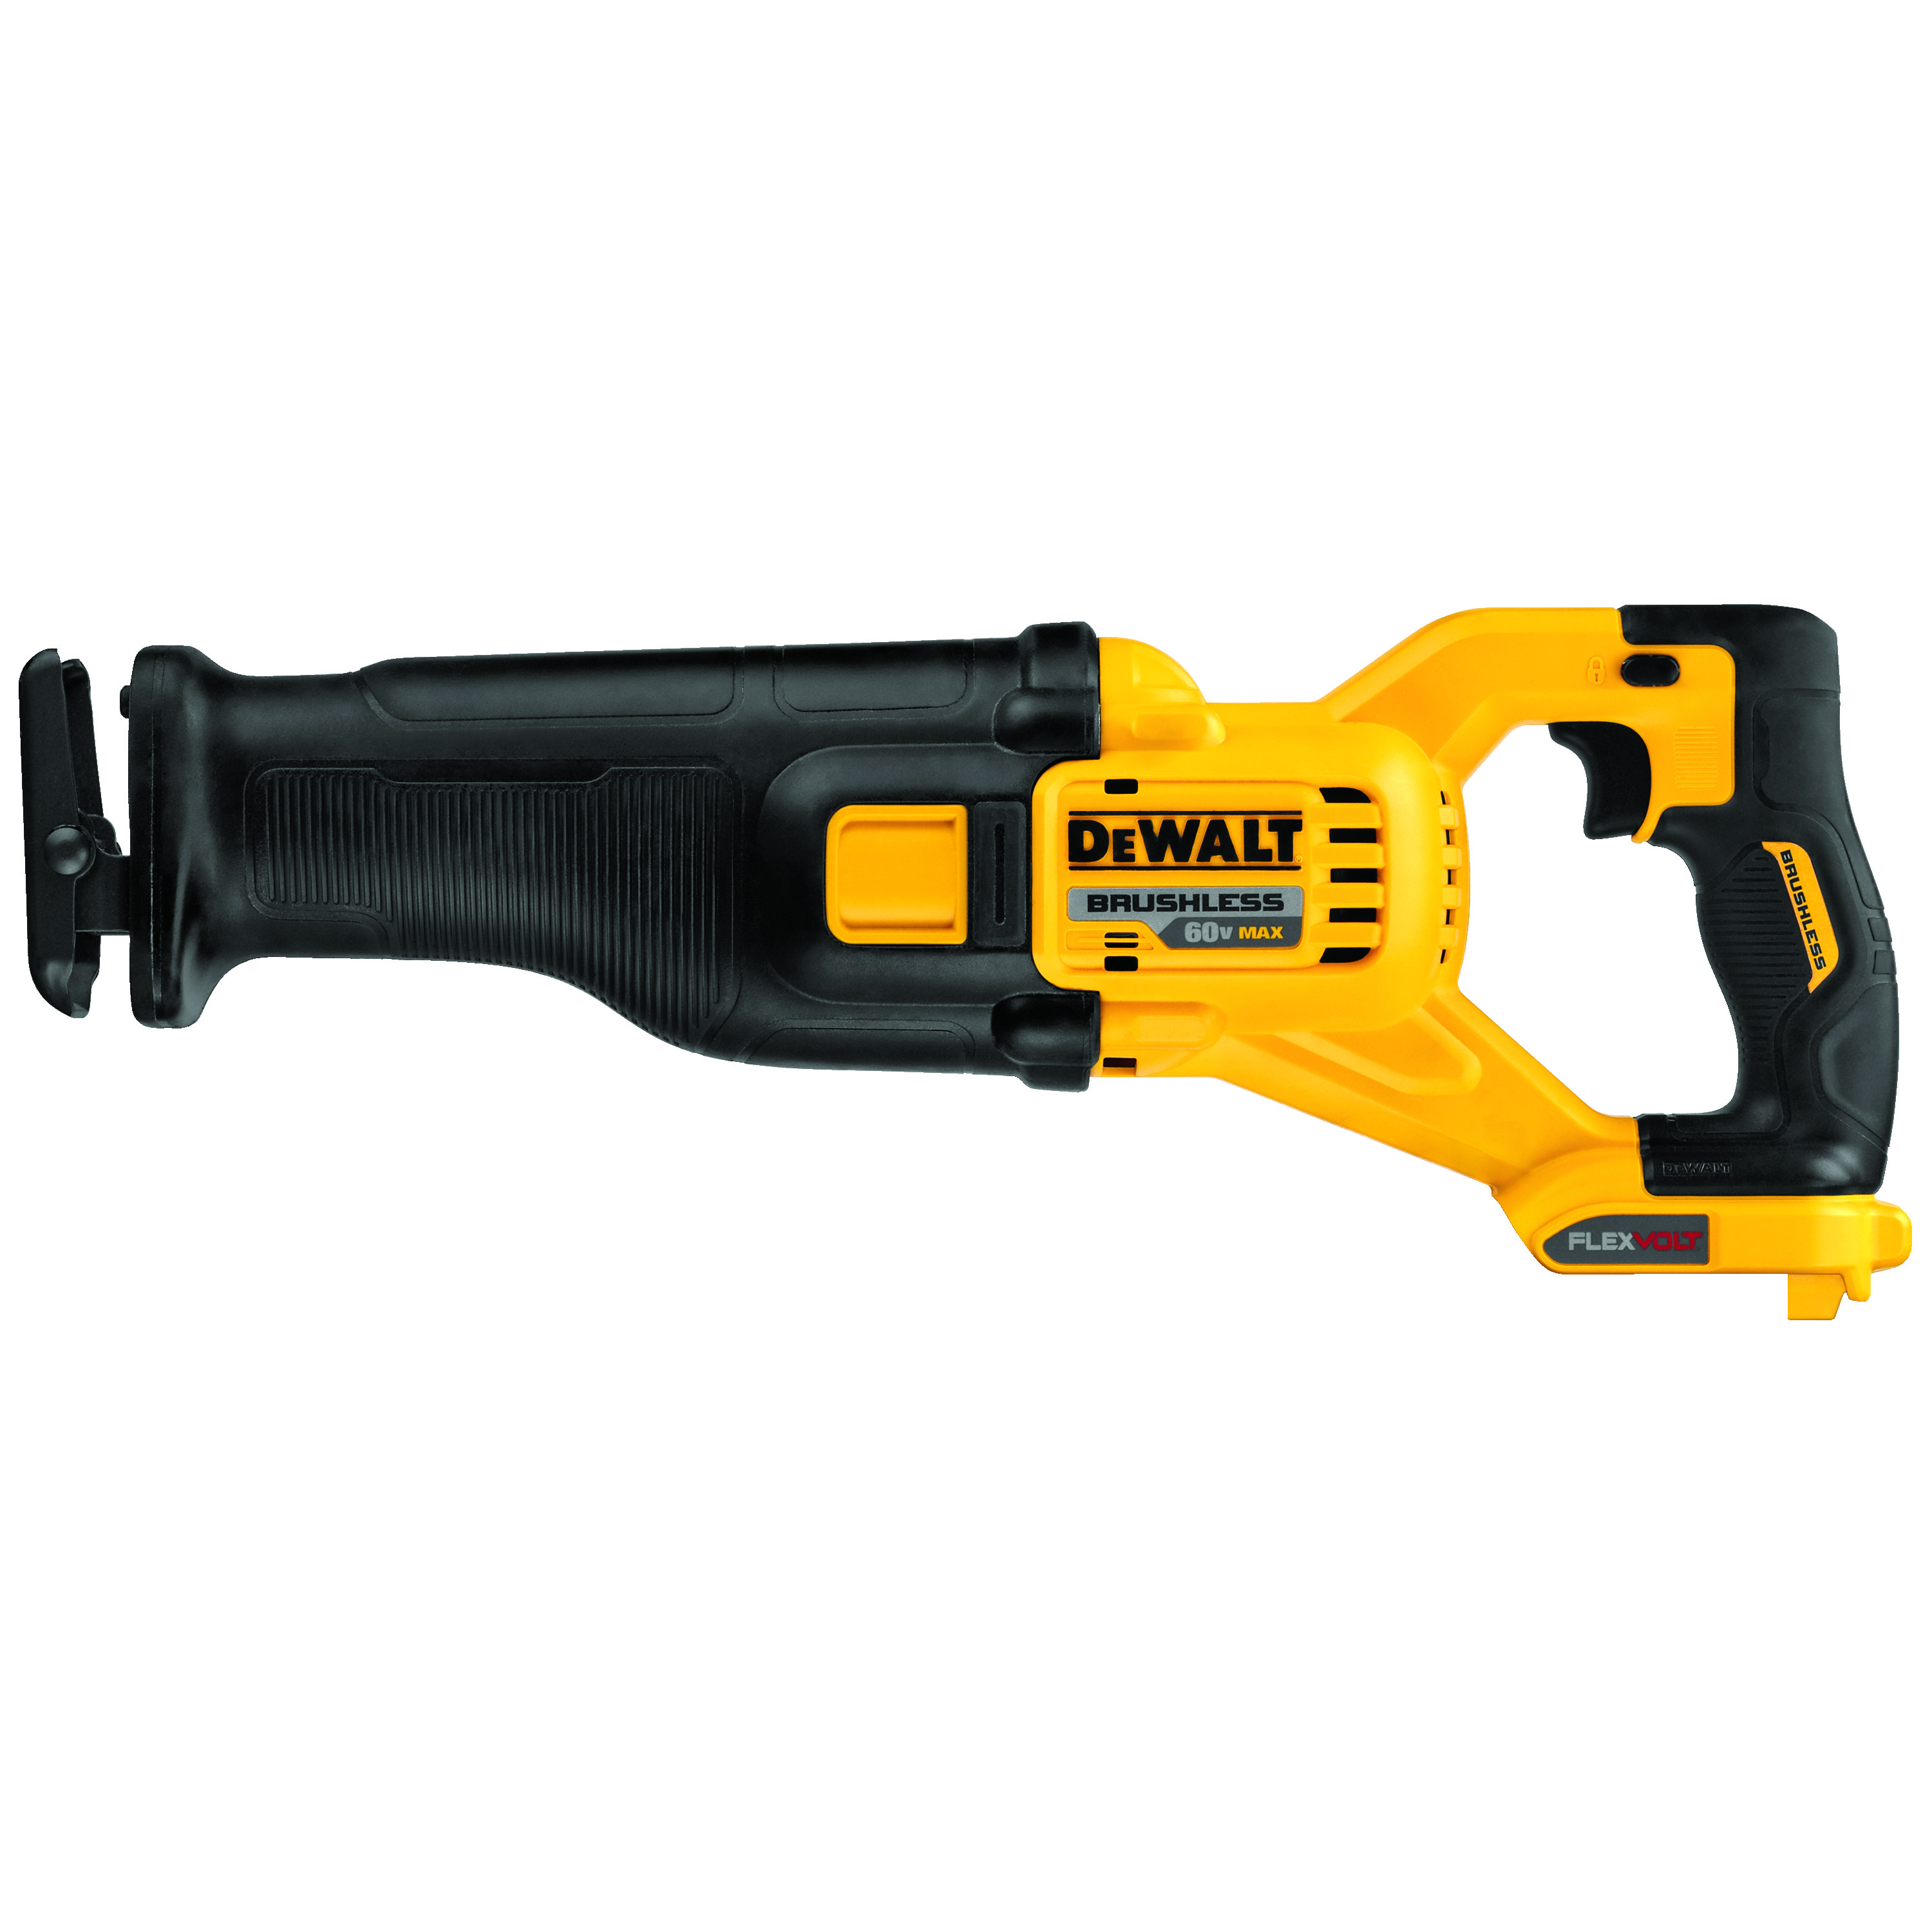 DeWALT® 60V MAX* FLEXVOLT™ DCS388B Max® Brushless Cordless Reciprocating Saw, 1-1/8 in L Stroke, 0 to 3000 spm, Straight Cut, 60 V, 17.725 in OAL